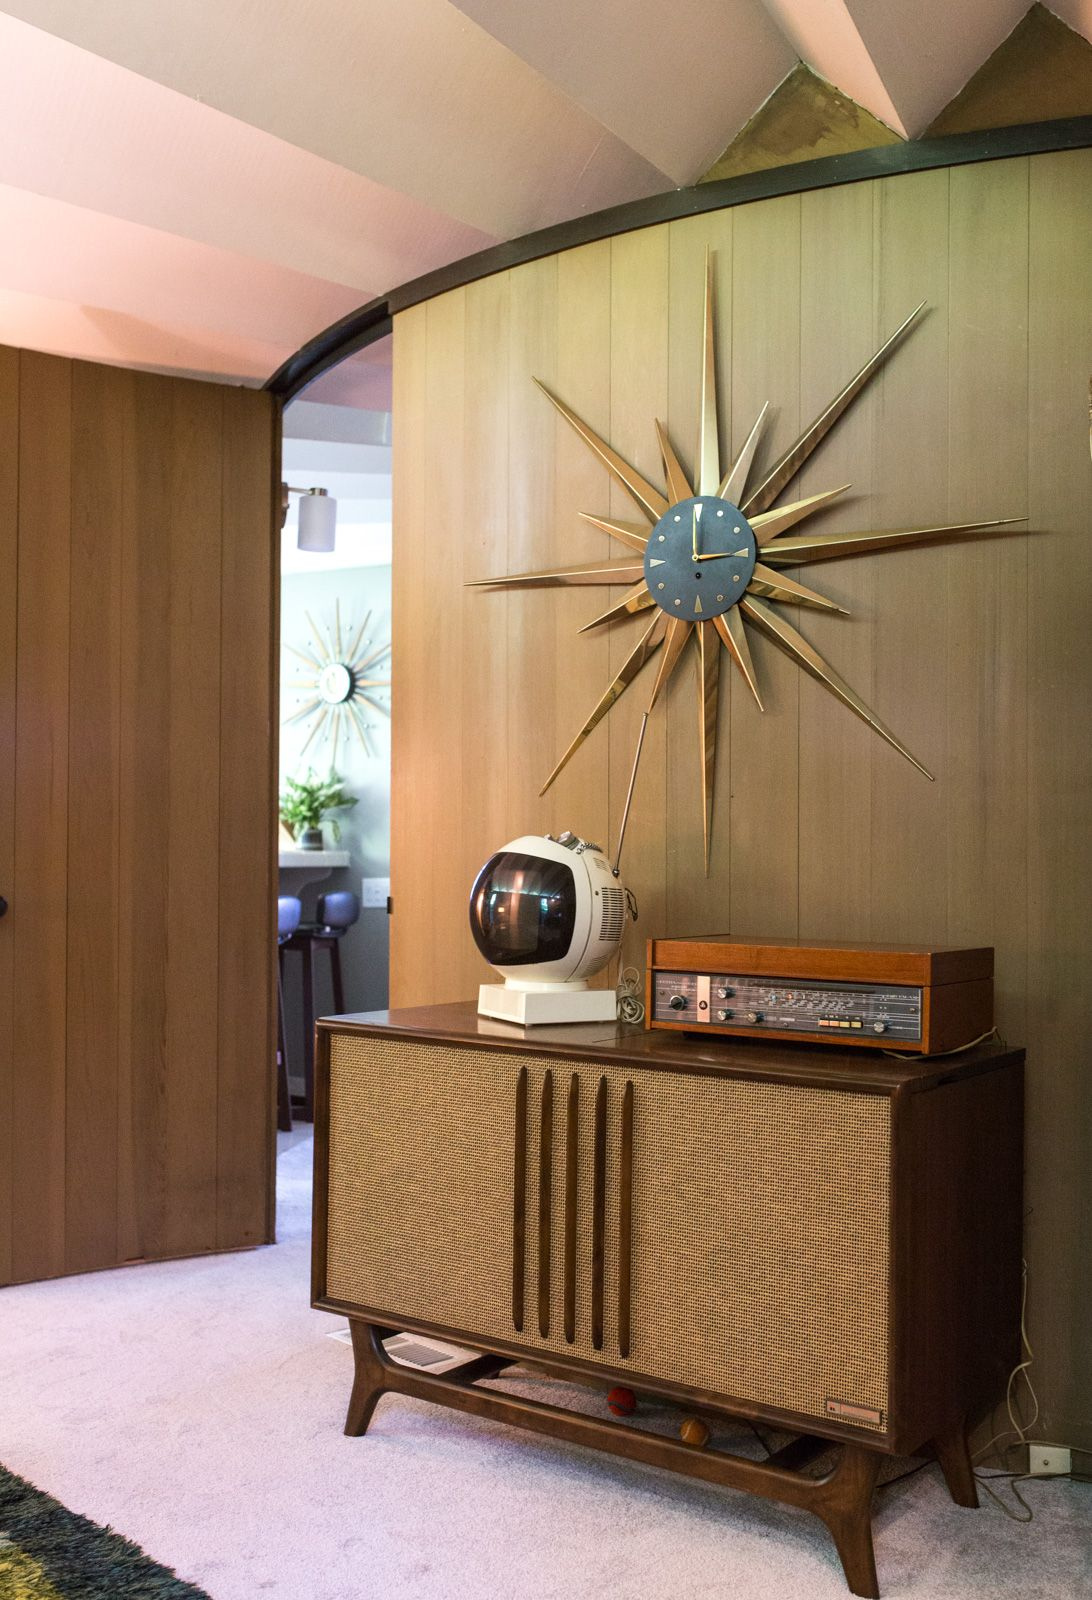 Style maven the midcentury experts youure dying to meet low wall